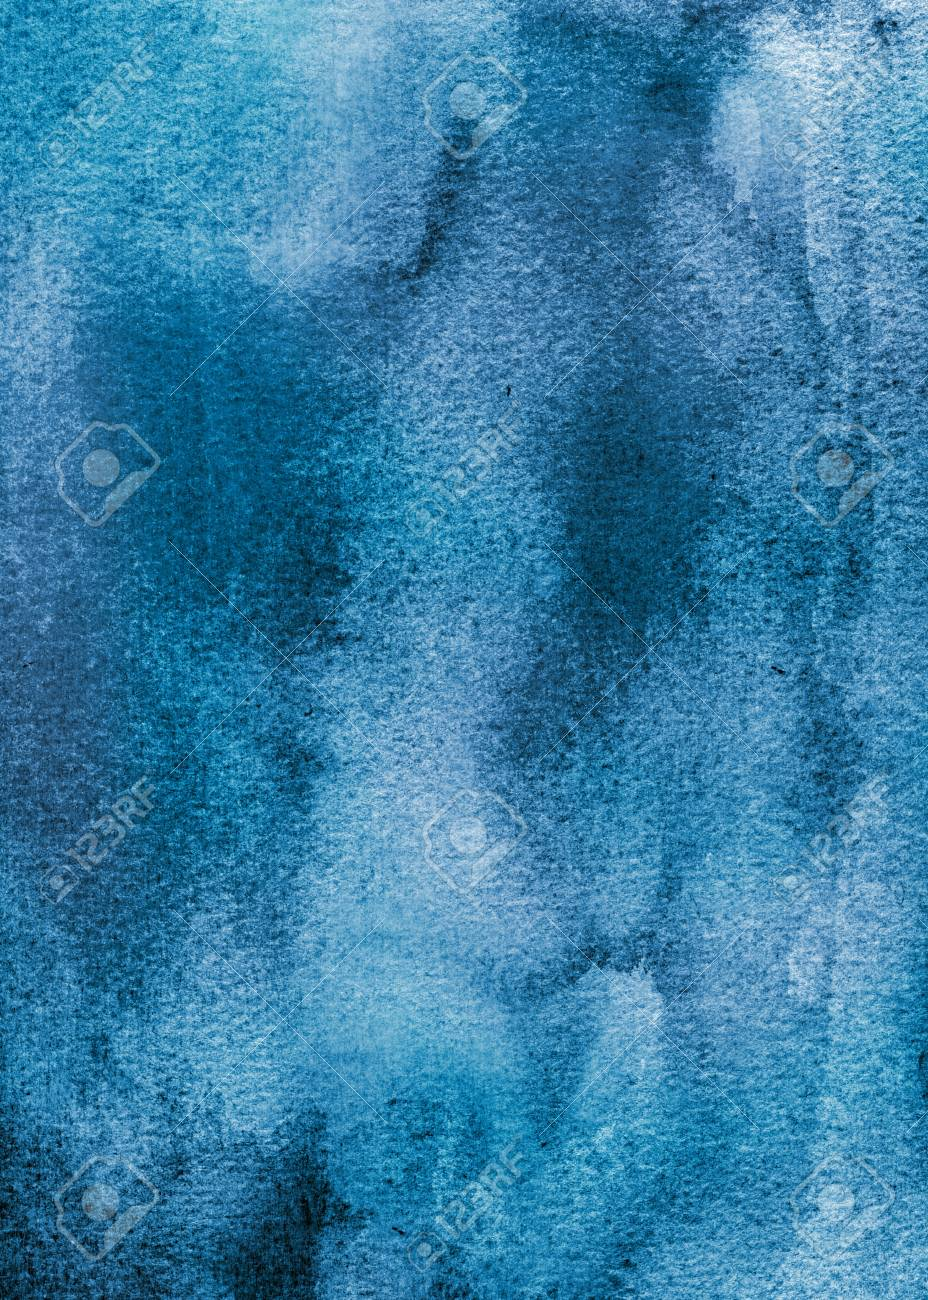 Abstract Light Blue And Dark Watercolor Background Stock Photo